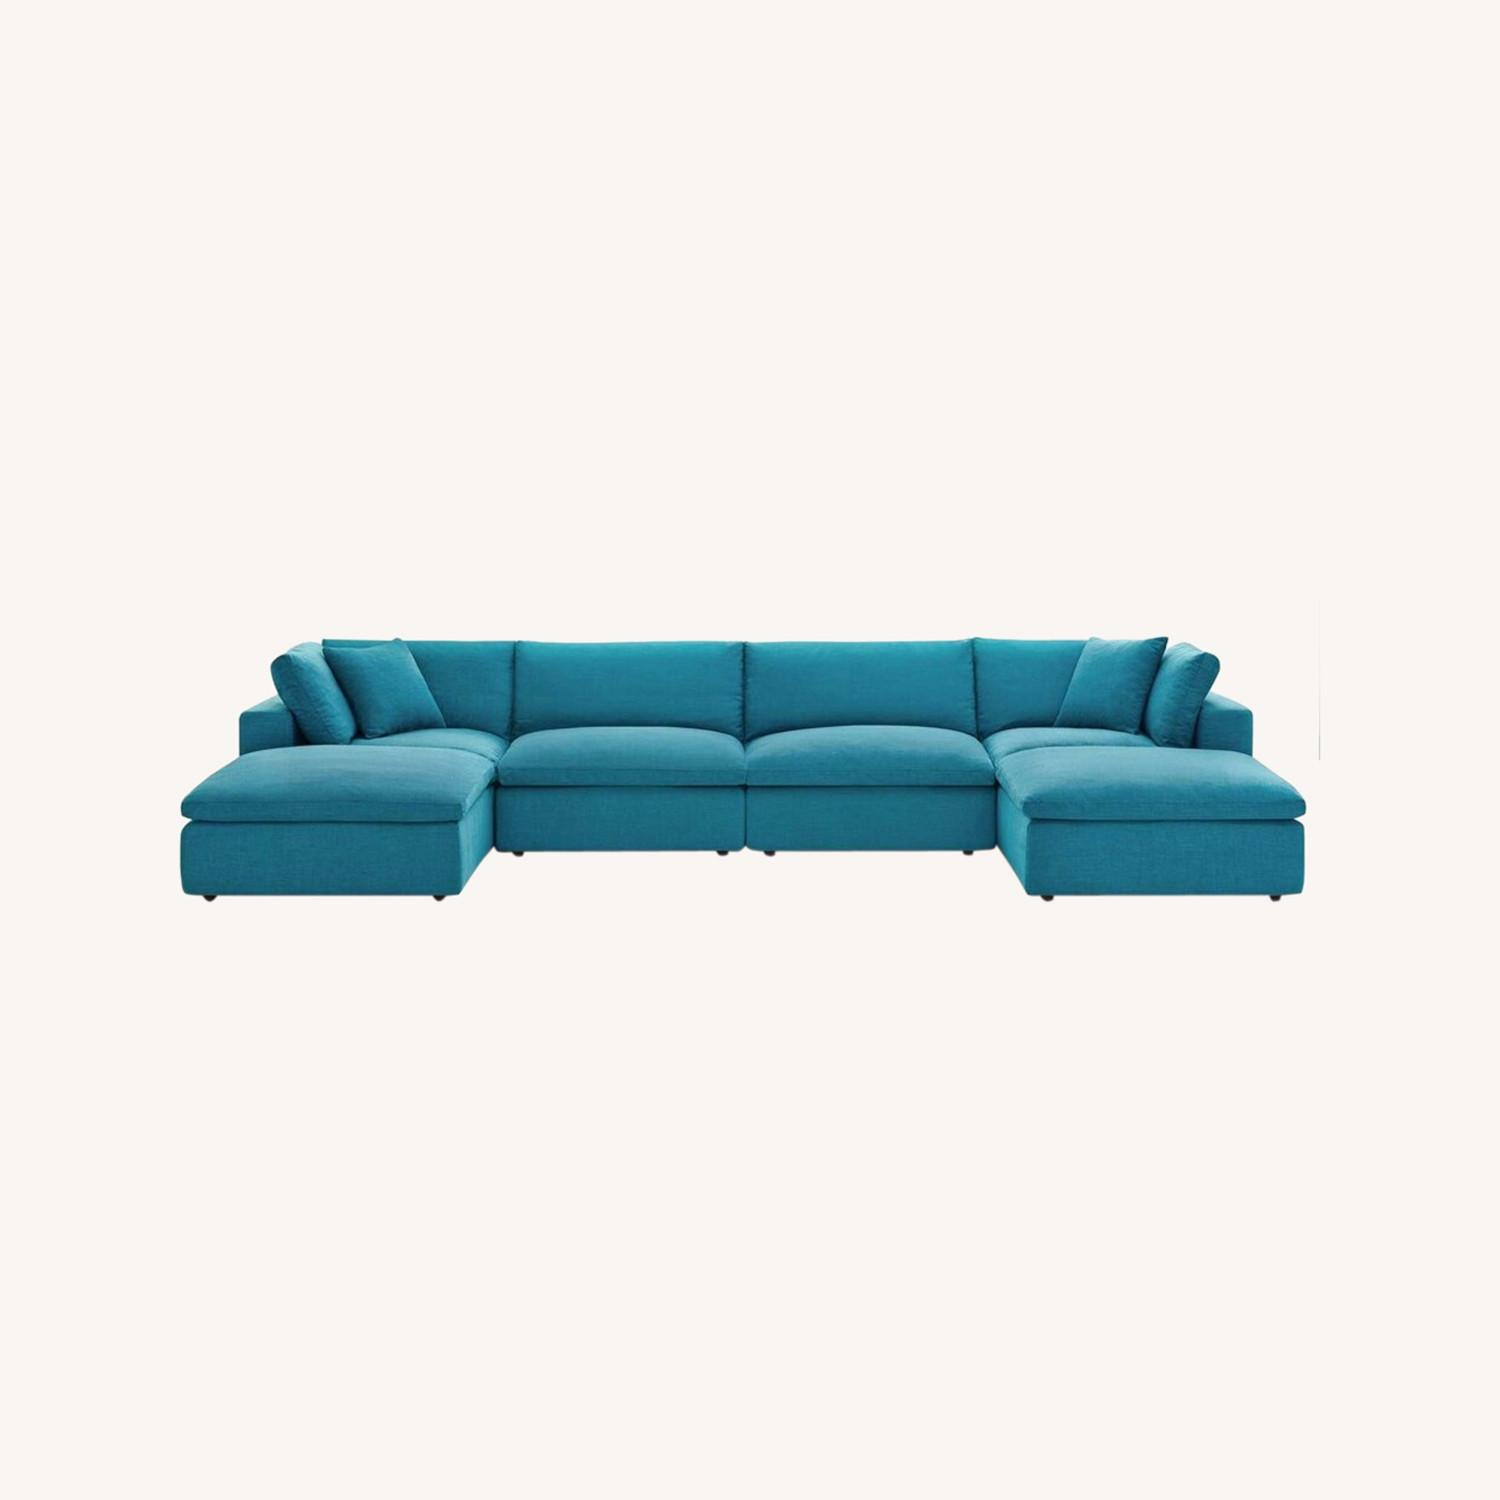 6-Piece Sectional Sofa In Teal Linen Fabric - image-8